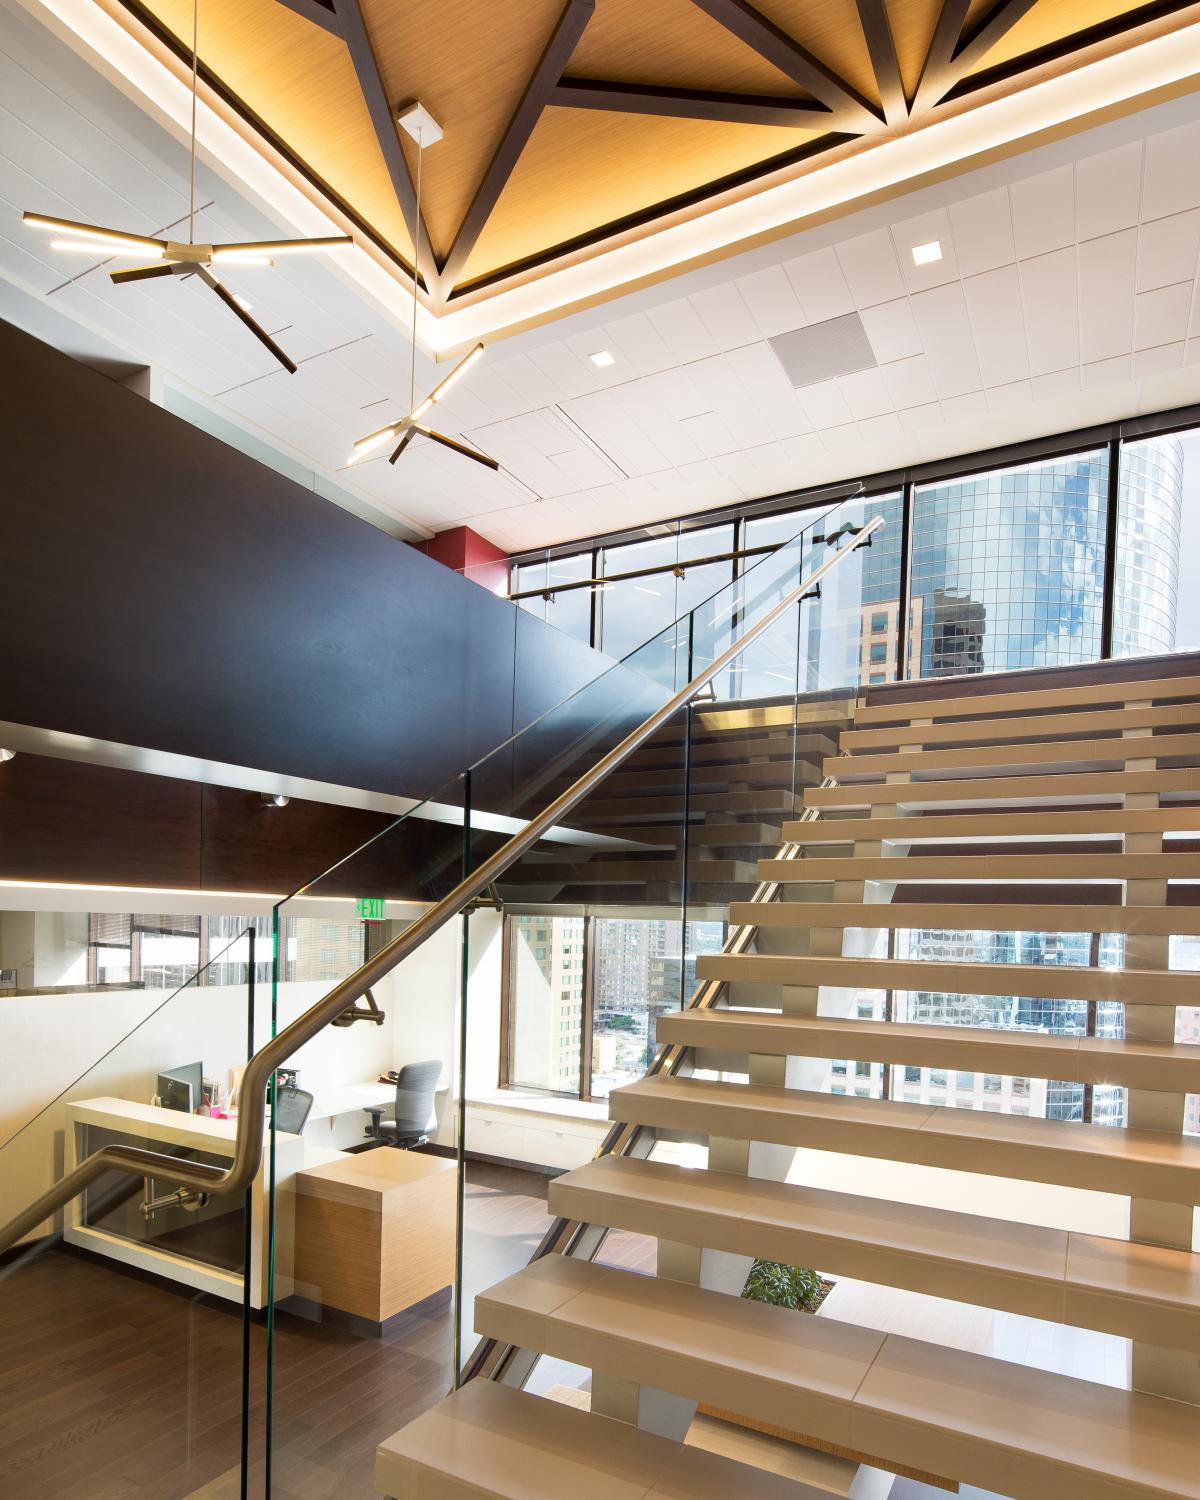 Alden Torch Financial Stairs From Lobby Commercial Construction Denver Colorado